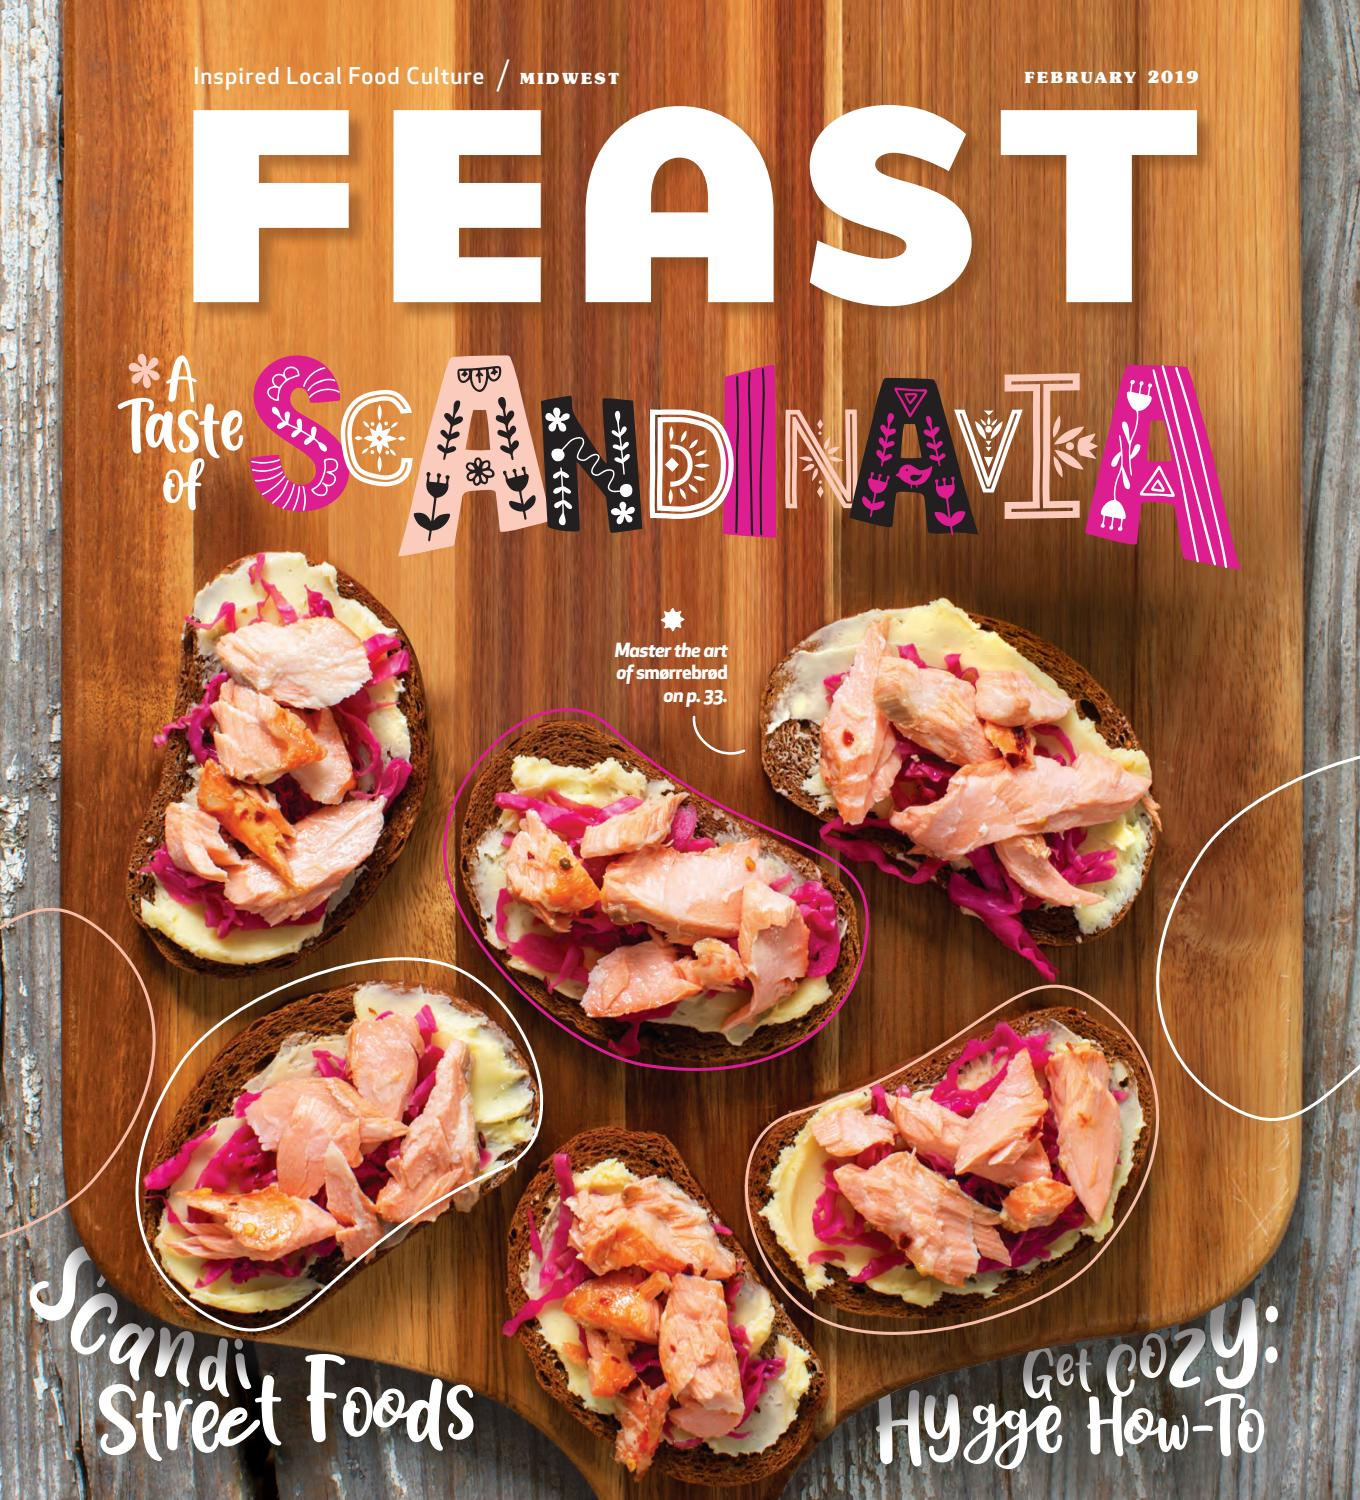 February 2019 Feast Magazine by Feast Magazine - issuu